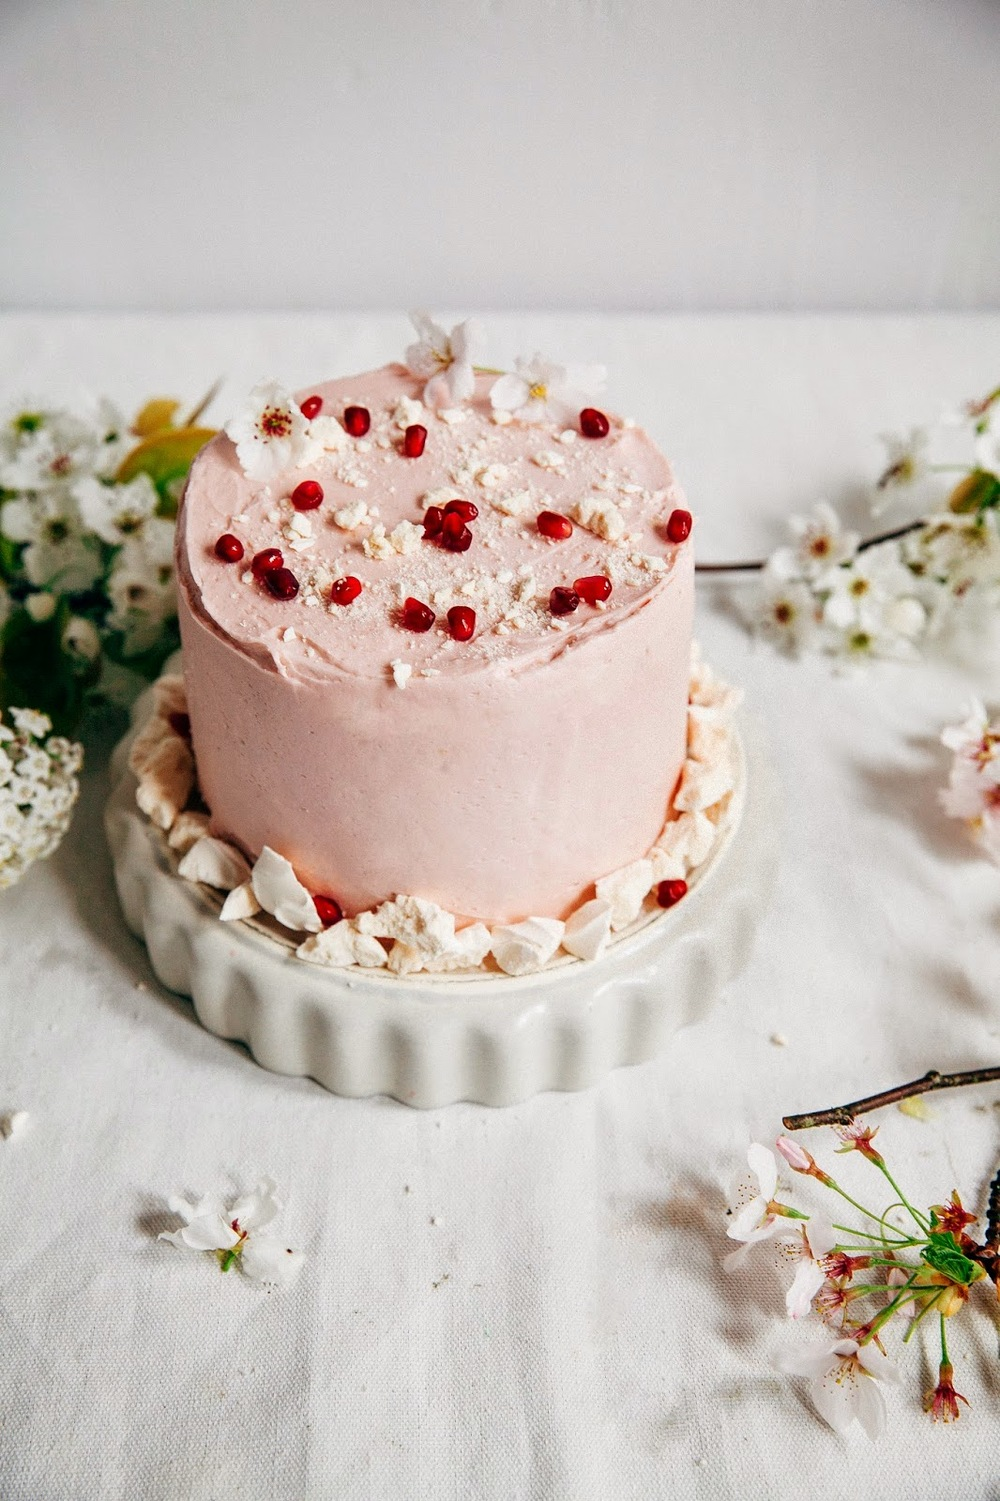 Pomegranate Citrus Meringue Cake